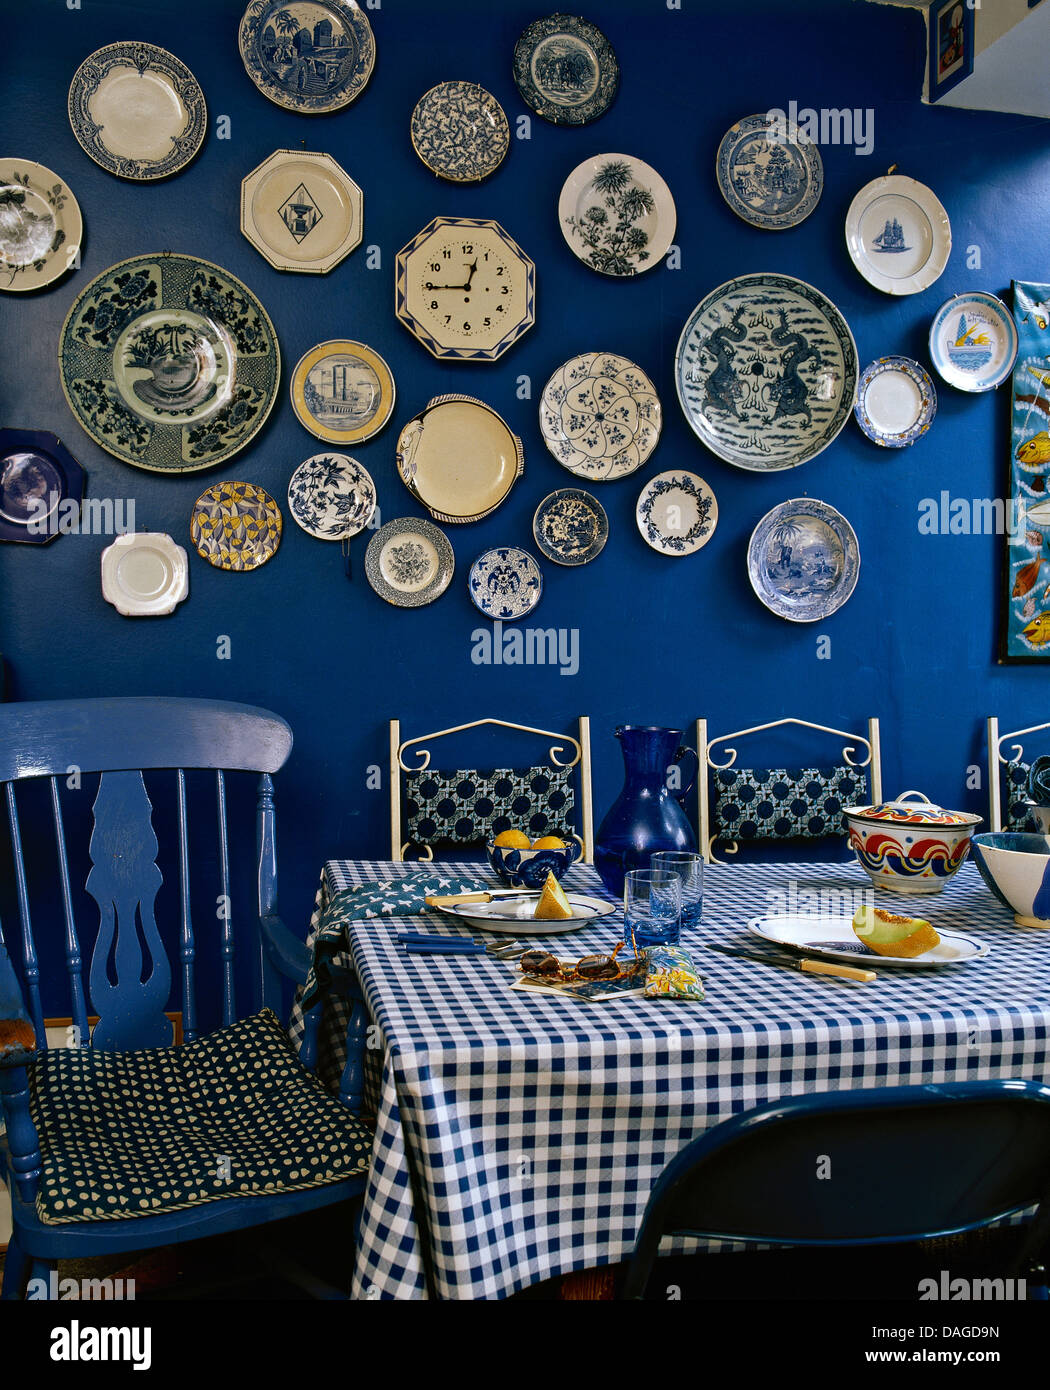 Plates On Wall Collection Of Pottery Plates On Wall Of Deep Blue Dining Room With